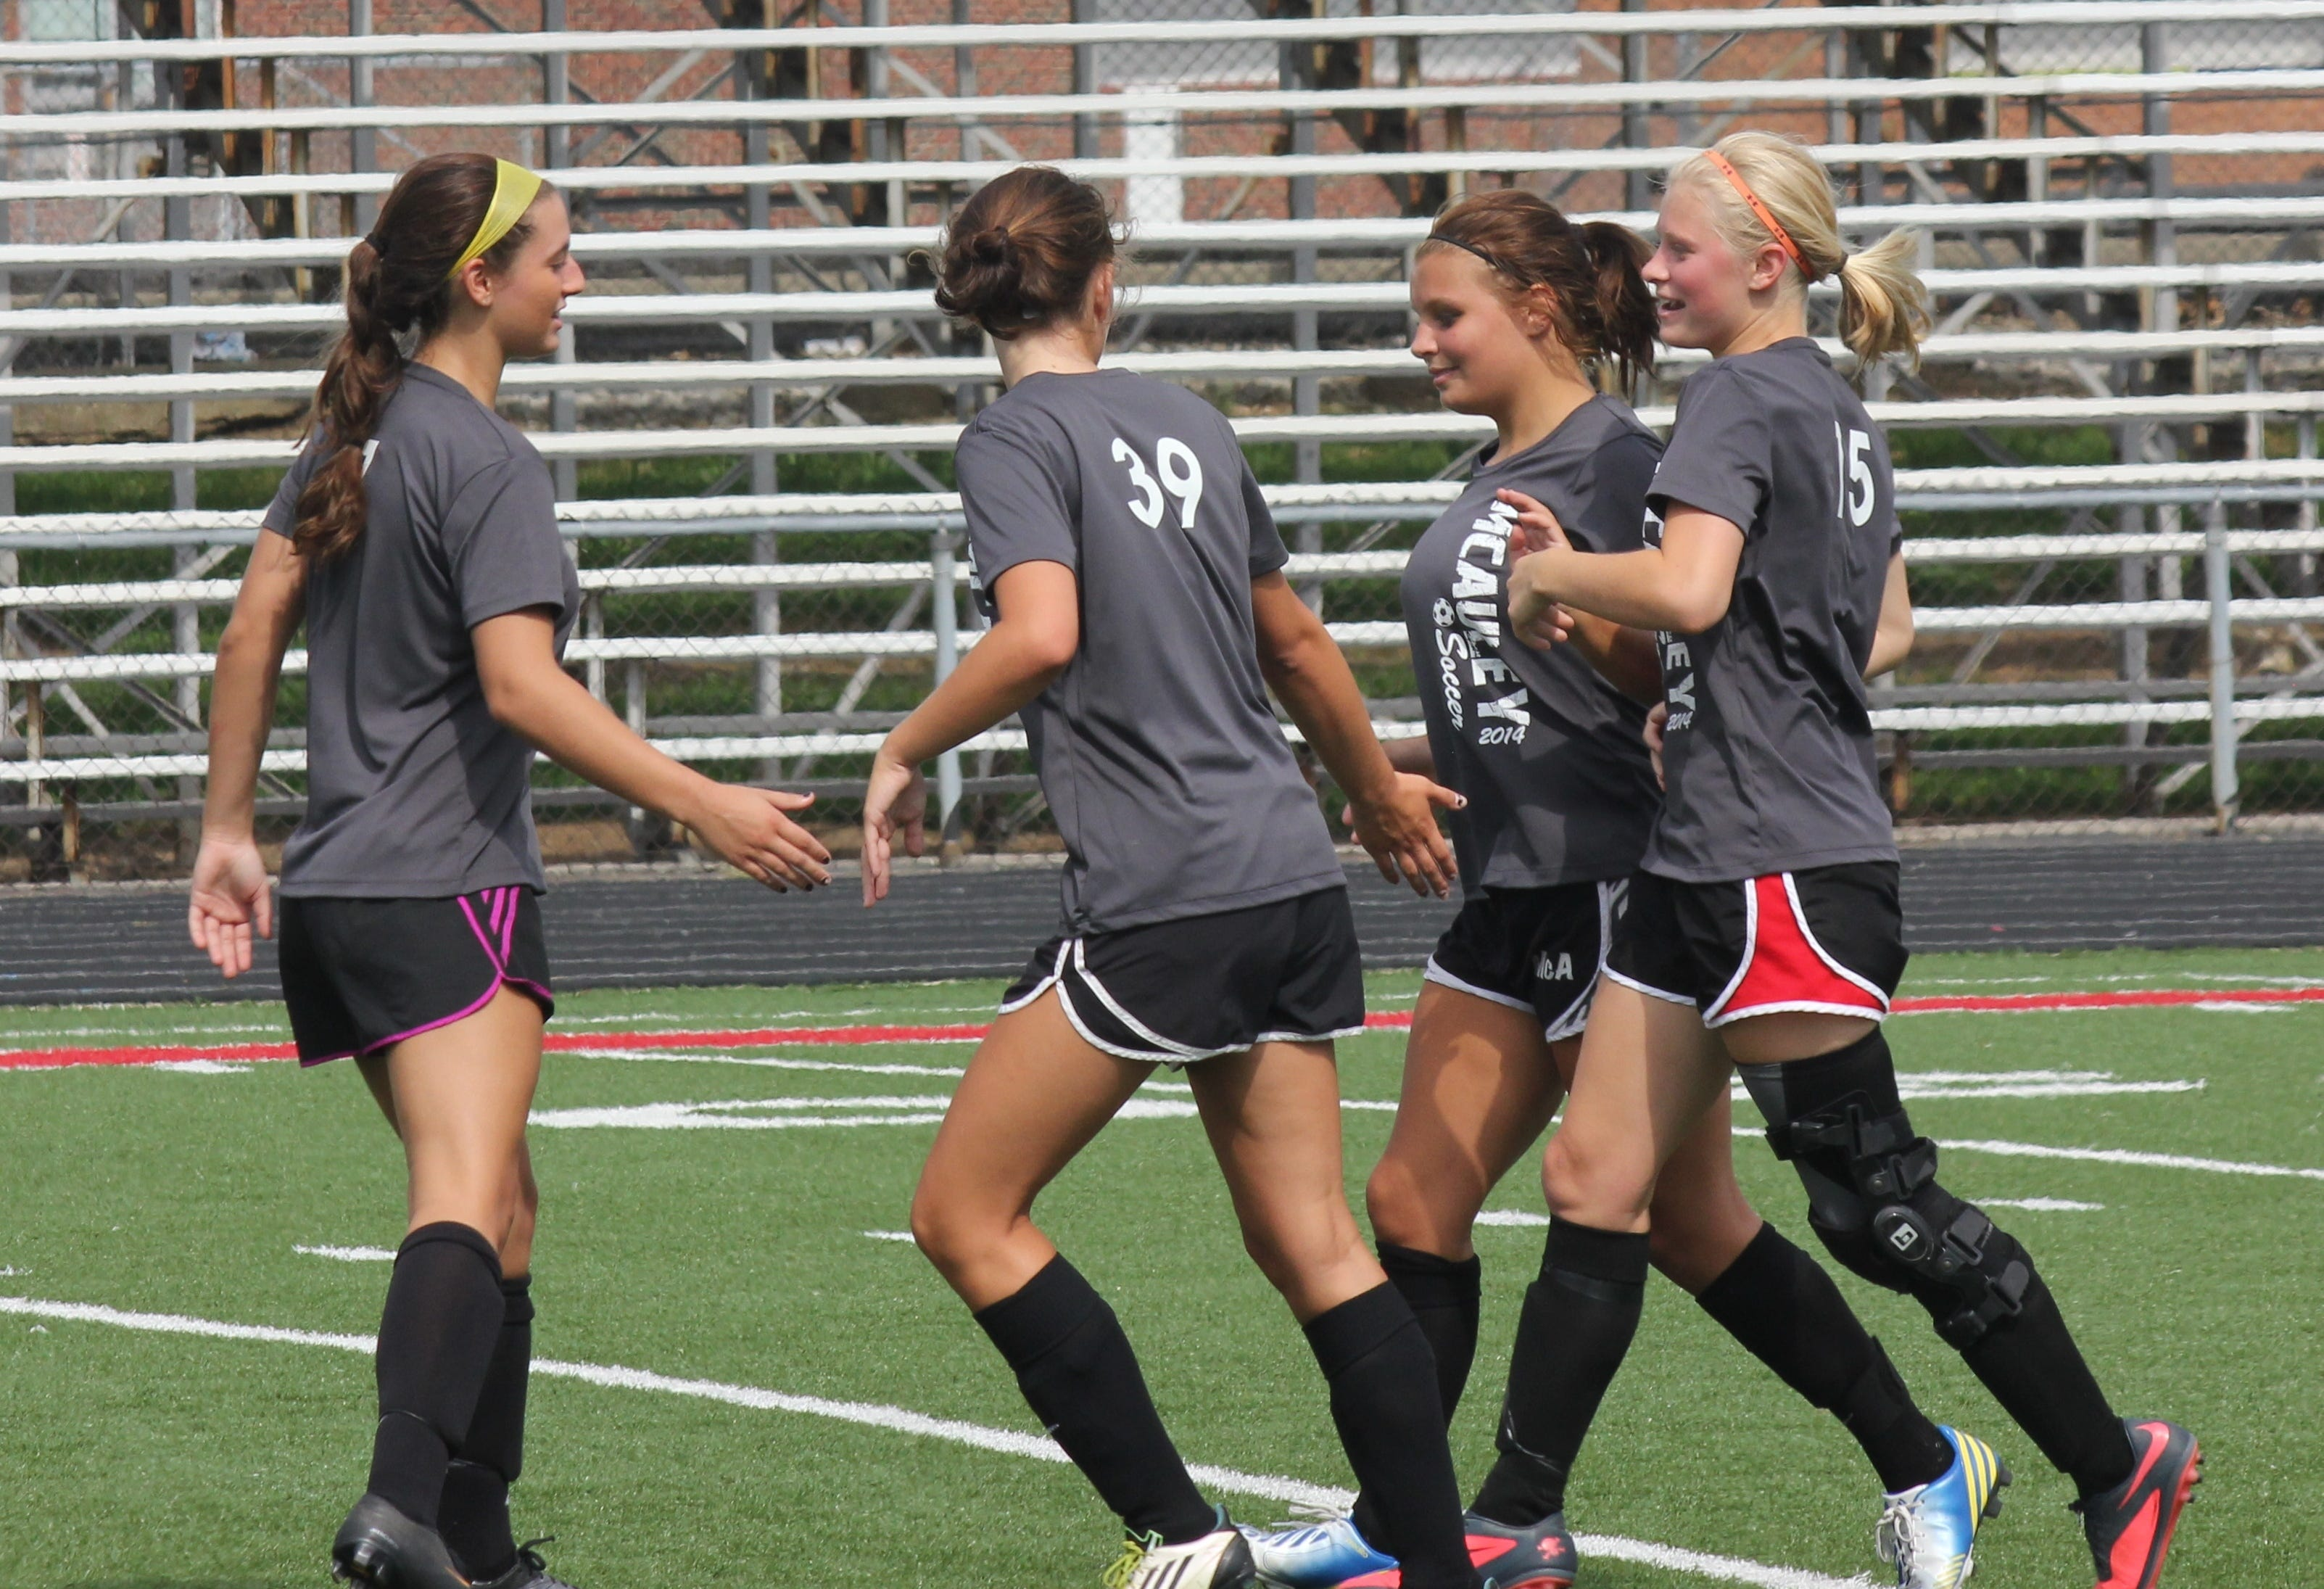 The McAuley players congratulate Sam Petri for scoring during a scrimmage against Badin in a 1-1 tie July 12 at Fairfield. The junior is back after missing her sophomore year with injuries to both her knees.